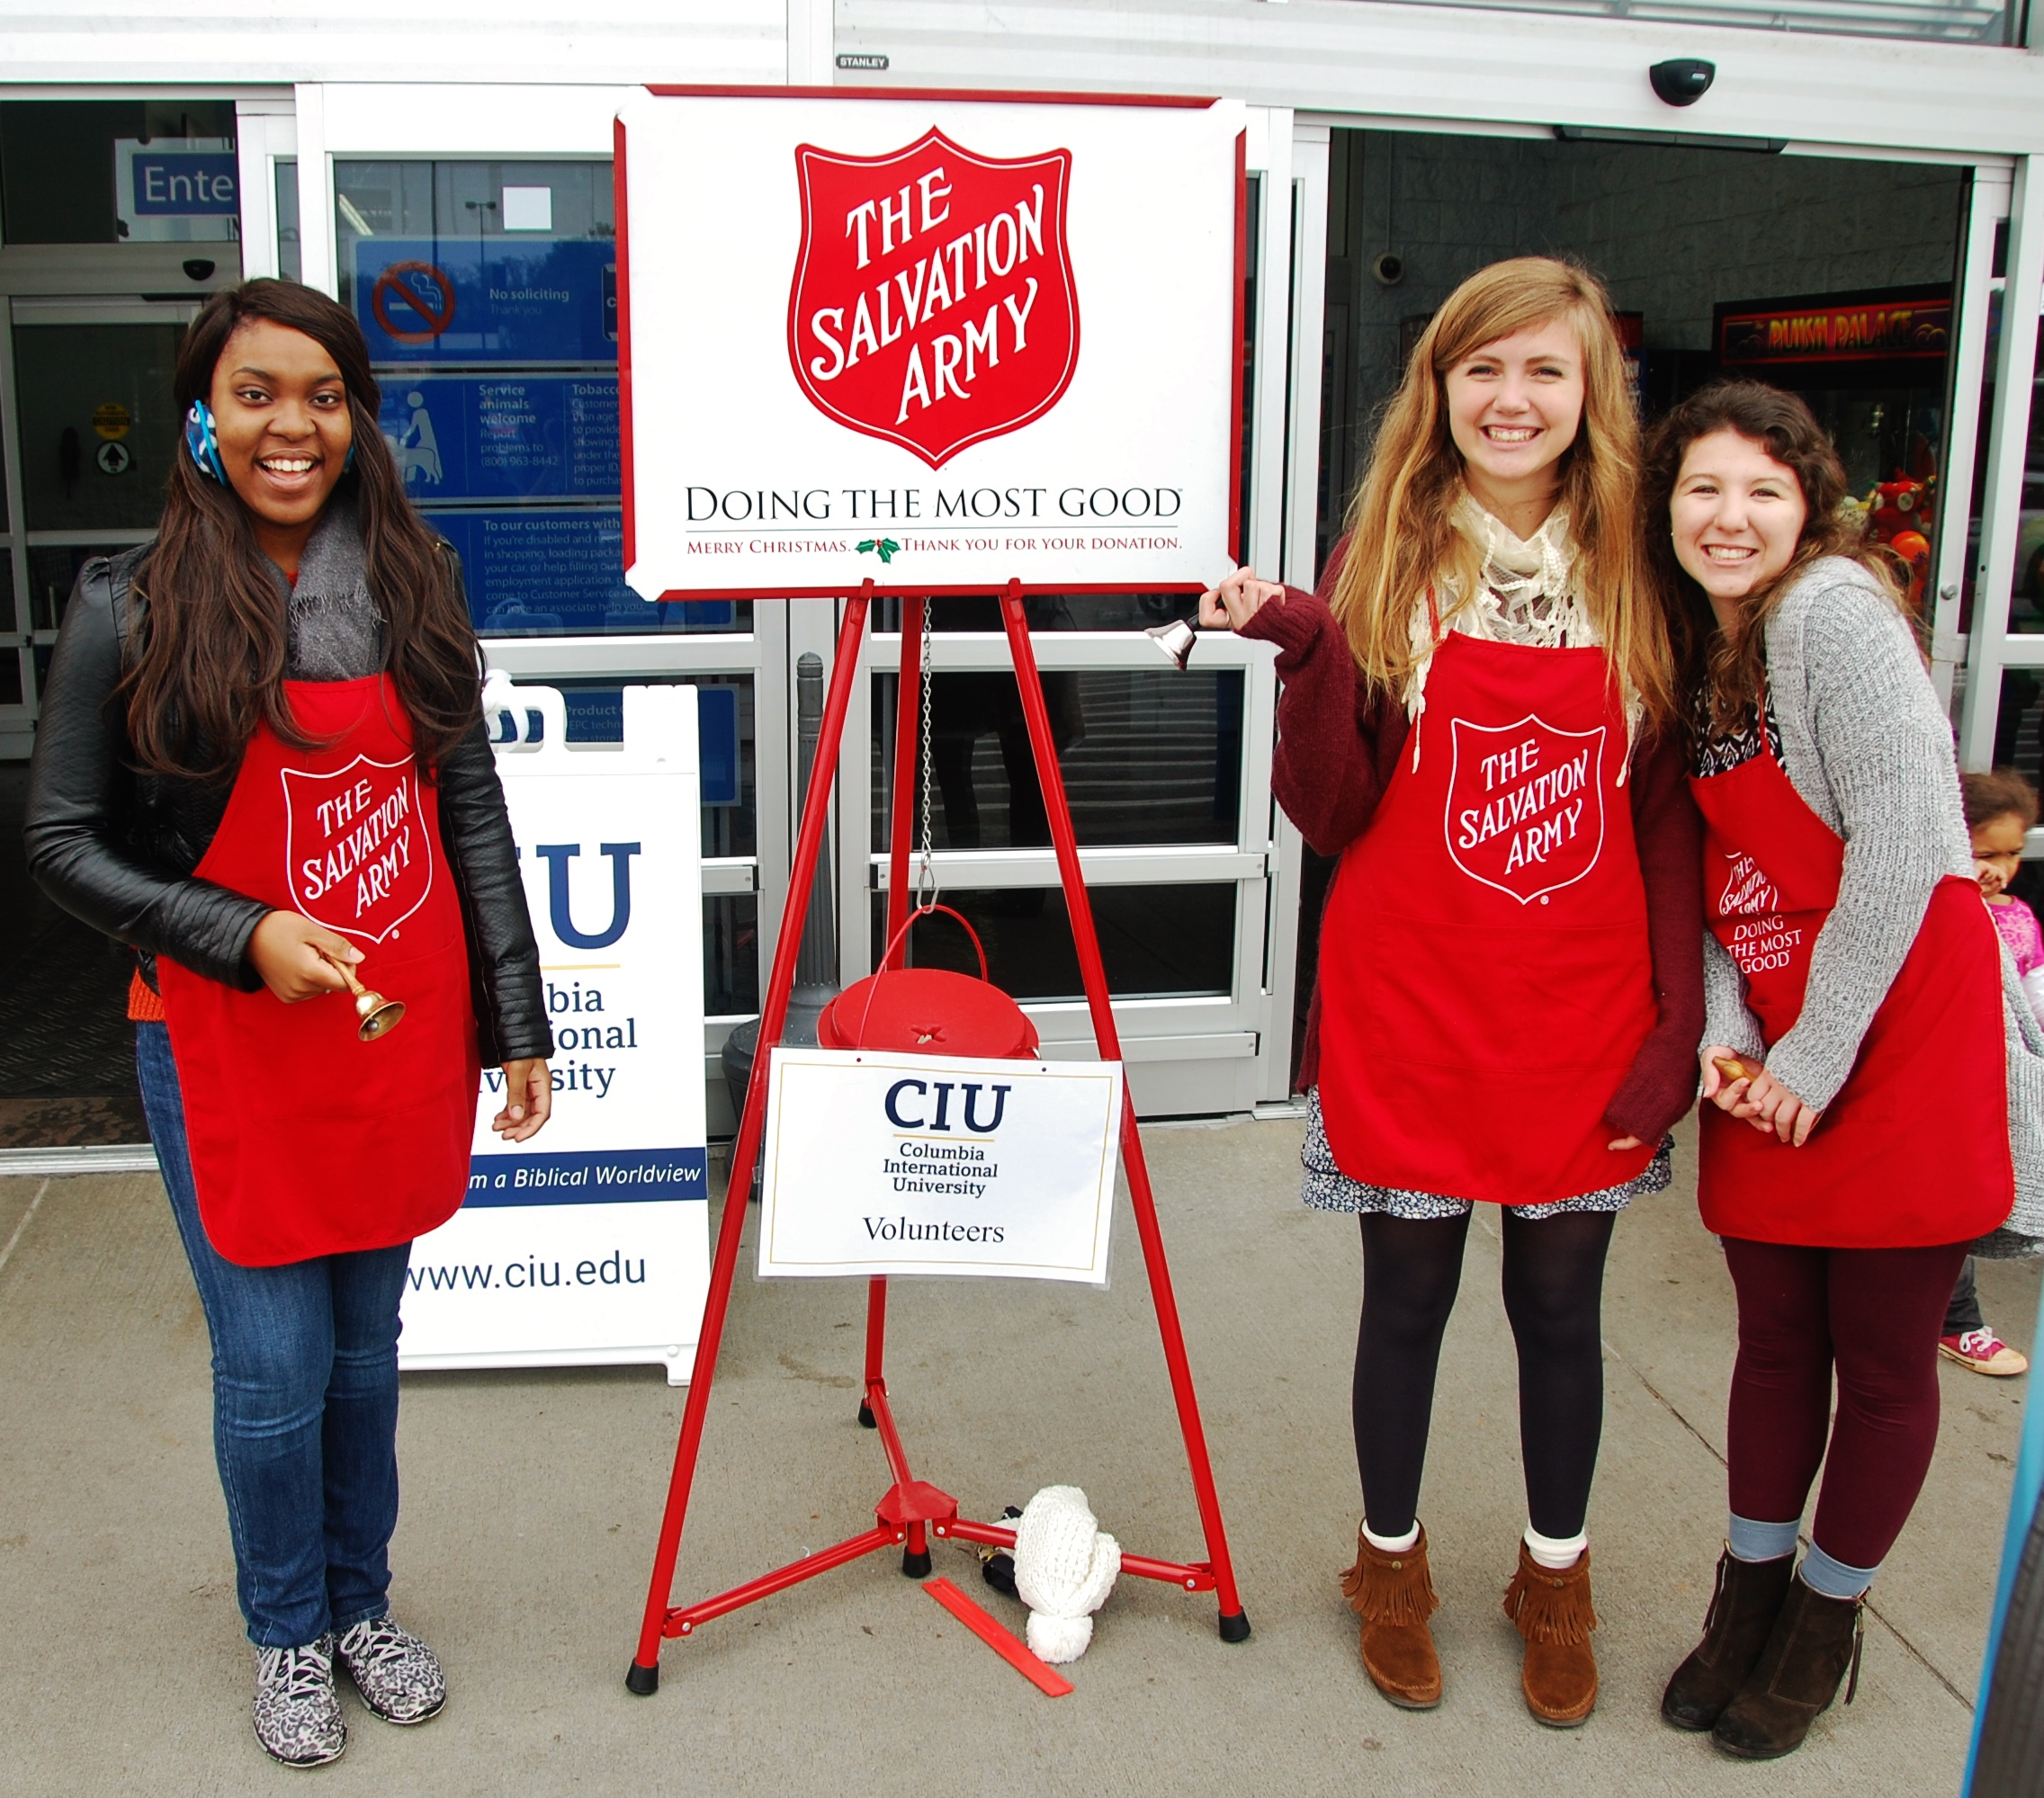 CIU students volunteering with the Salvation Army.